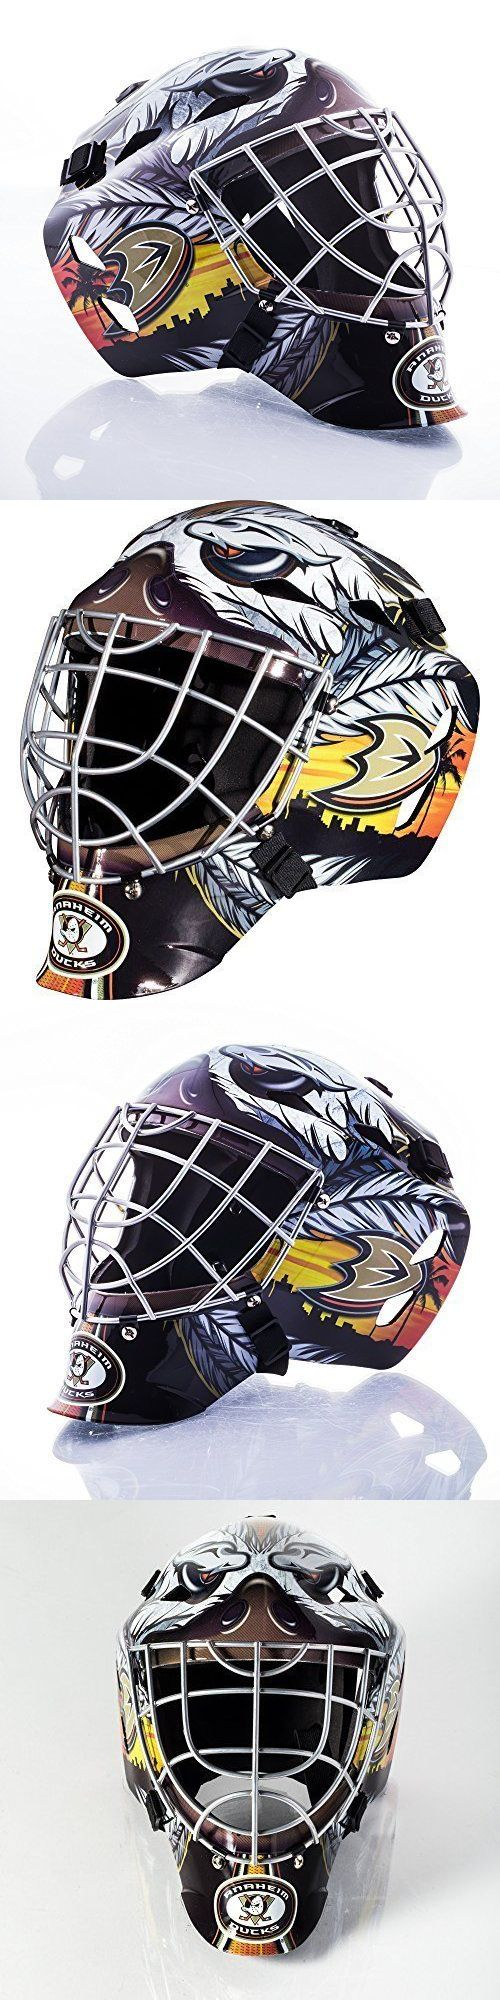 Novelties and Gifts 165937: Professional Collectiblenhl Anaheim Ducks Team Goalie Mask Street Hockey Helment BUY IT NOW ONLY: $66.59